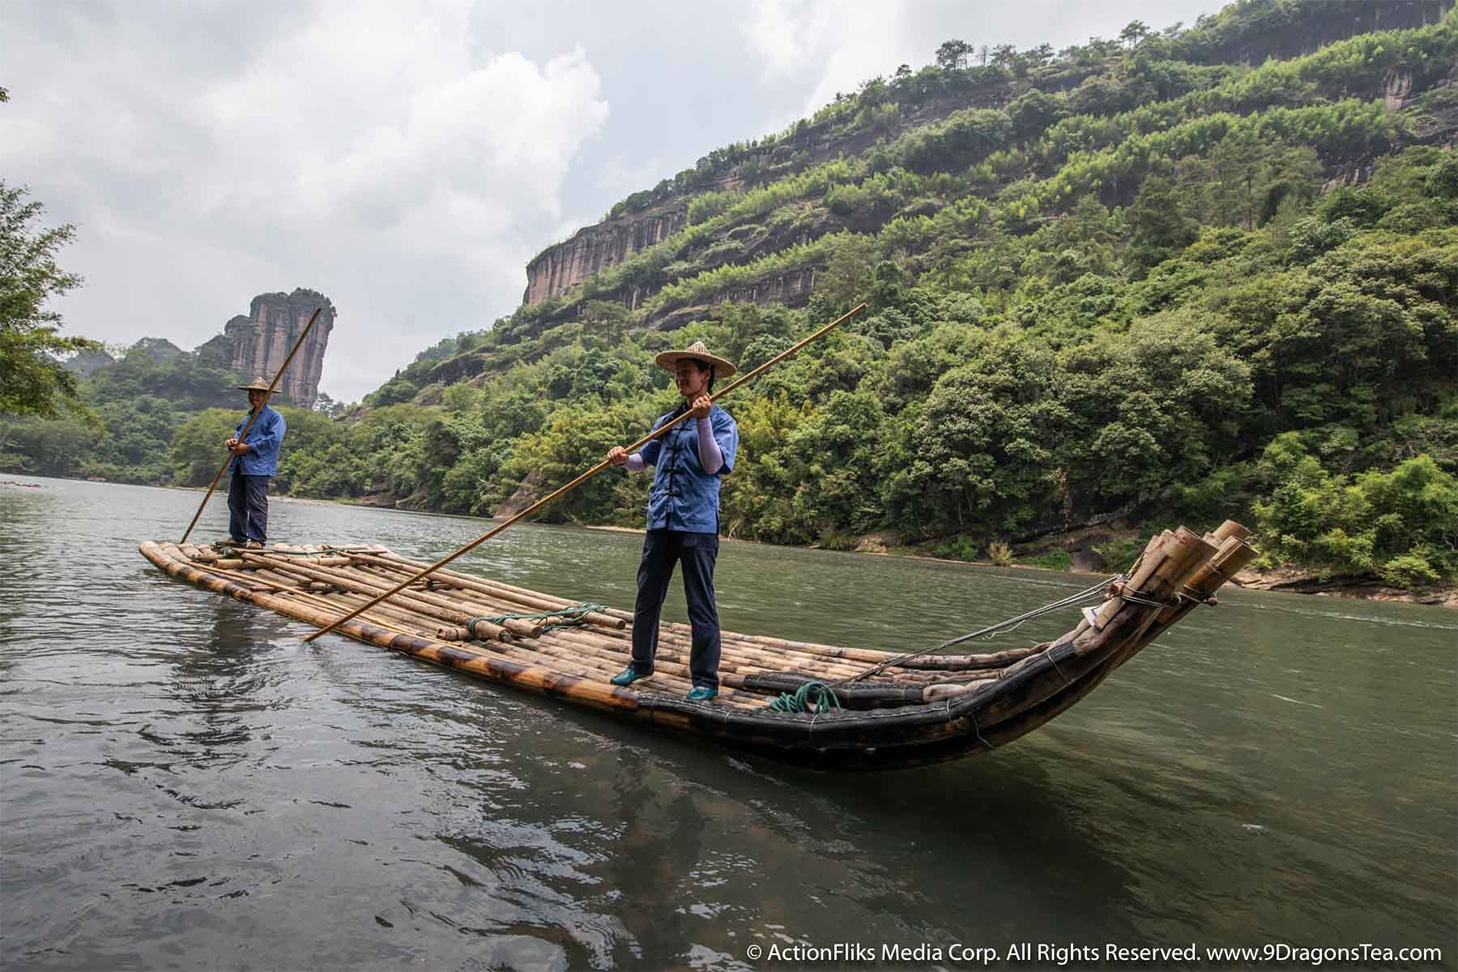 ActionFliks 9 Dragons Tea Signature Wuyi People Wuyi Landscape River Rafting Couple 359A5124